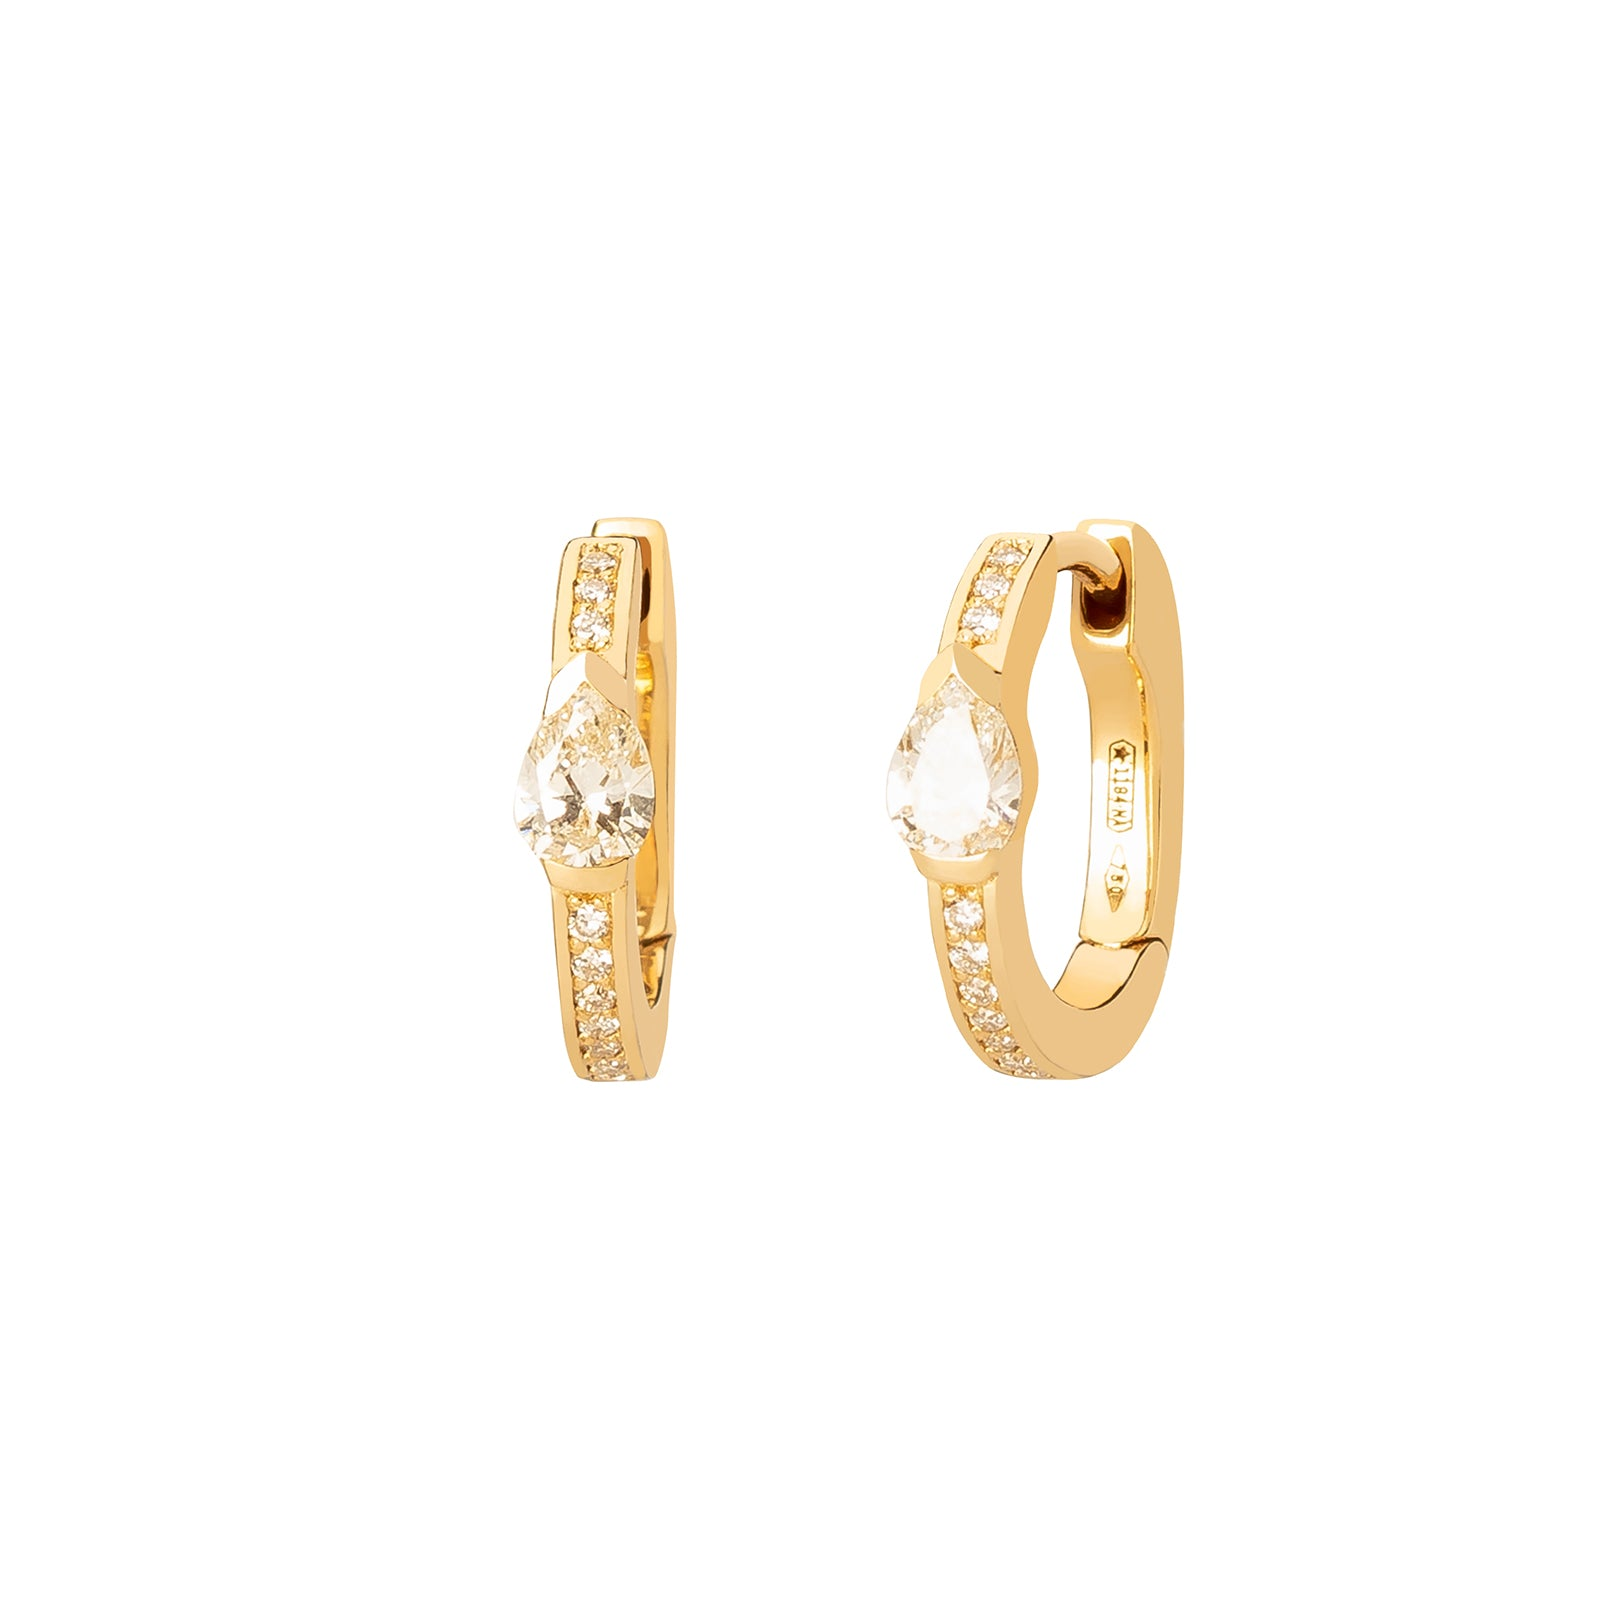 Colette Pave Diamond & Pear Huggies - Yellow Gold - Earrings - Broken English Jewelry